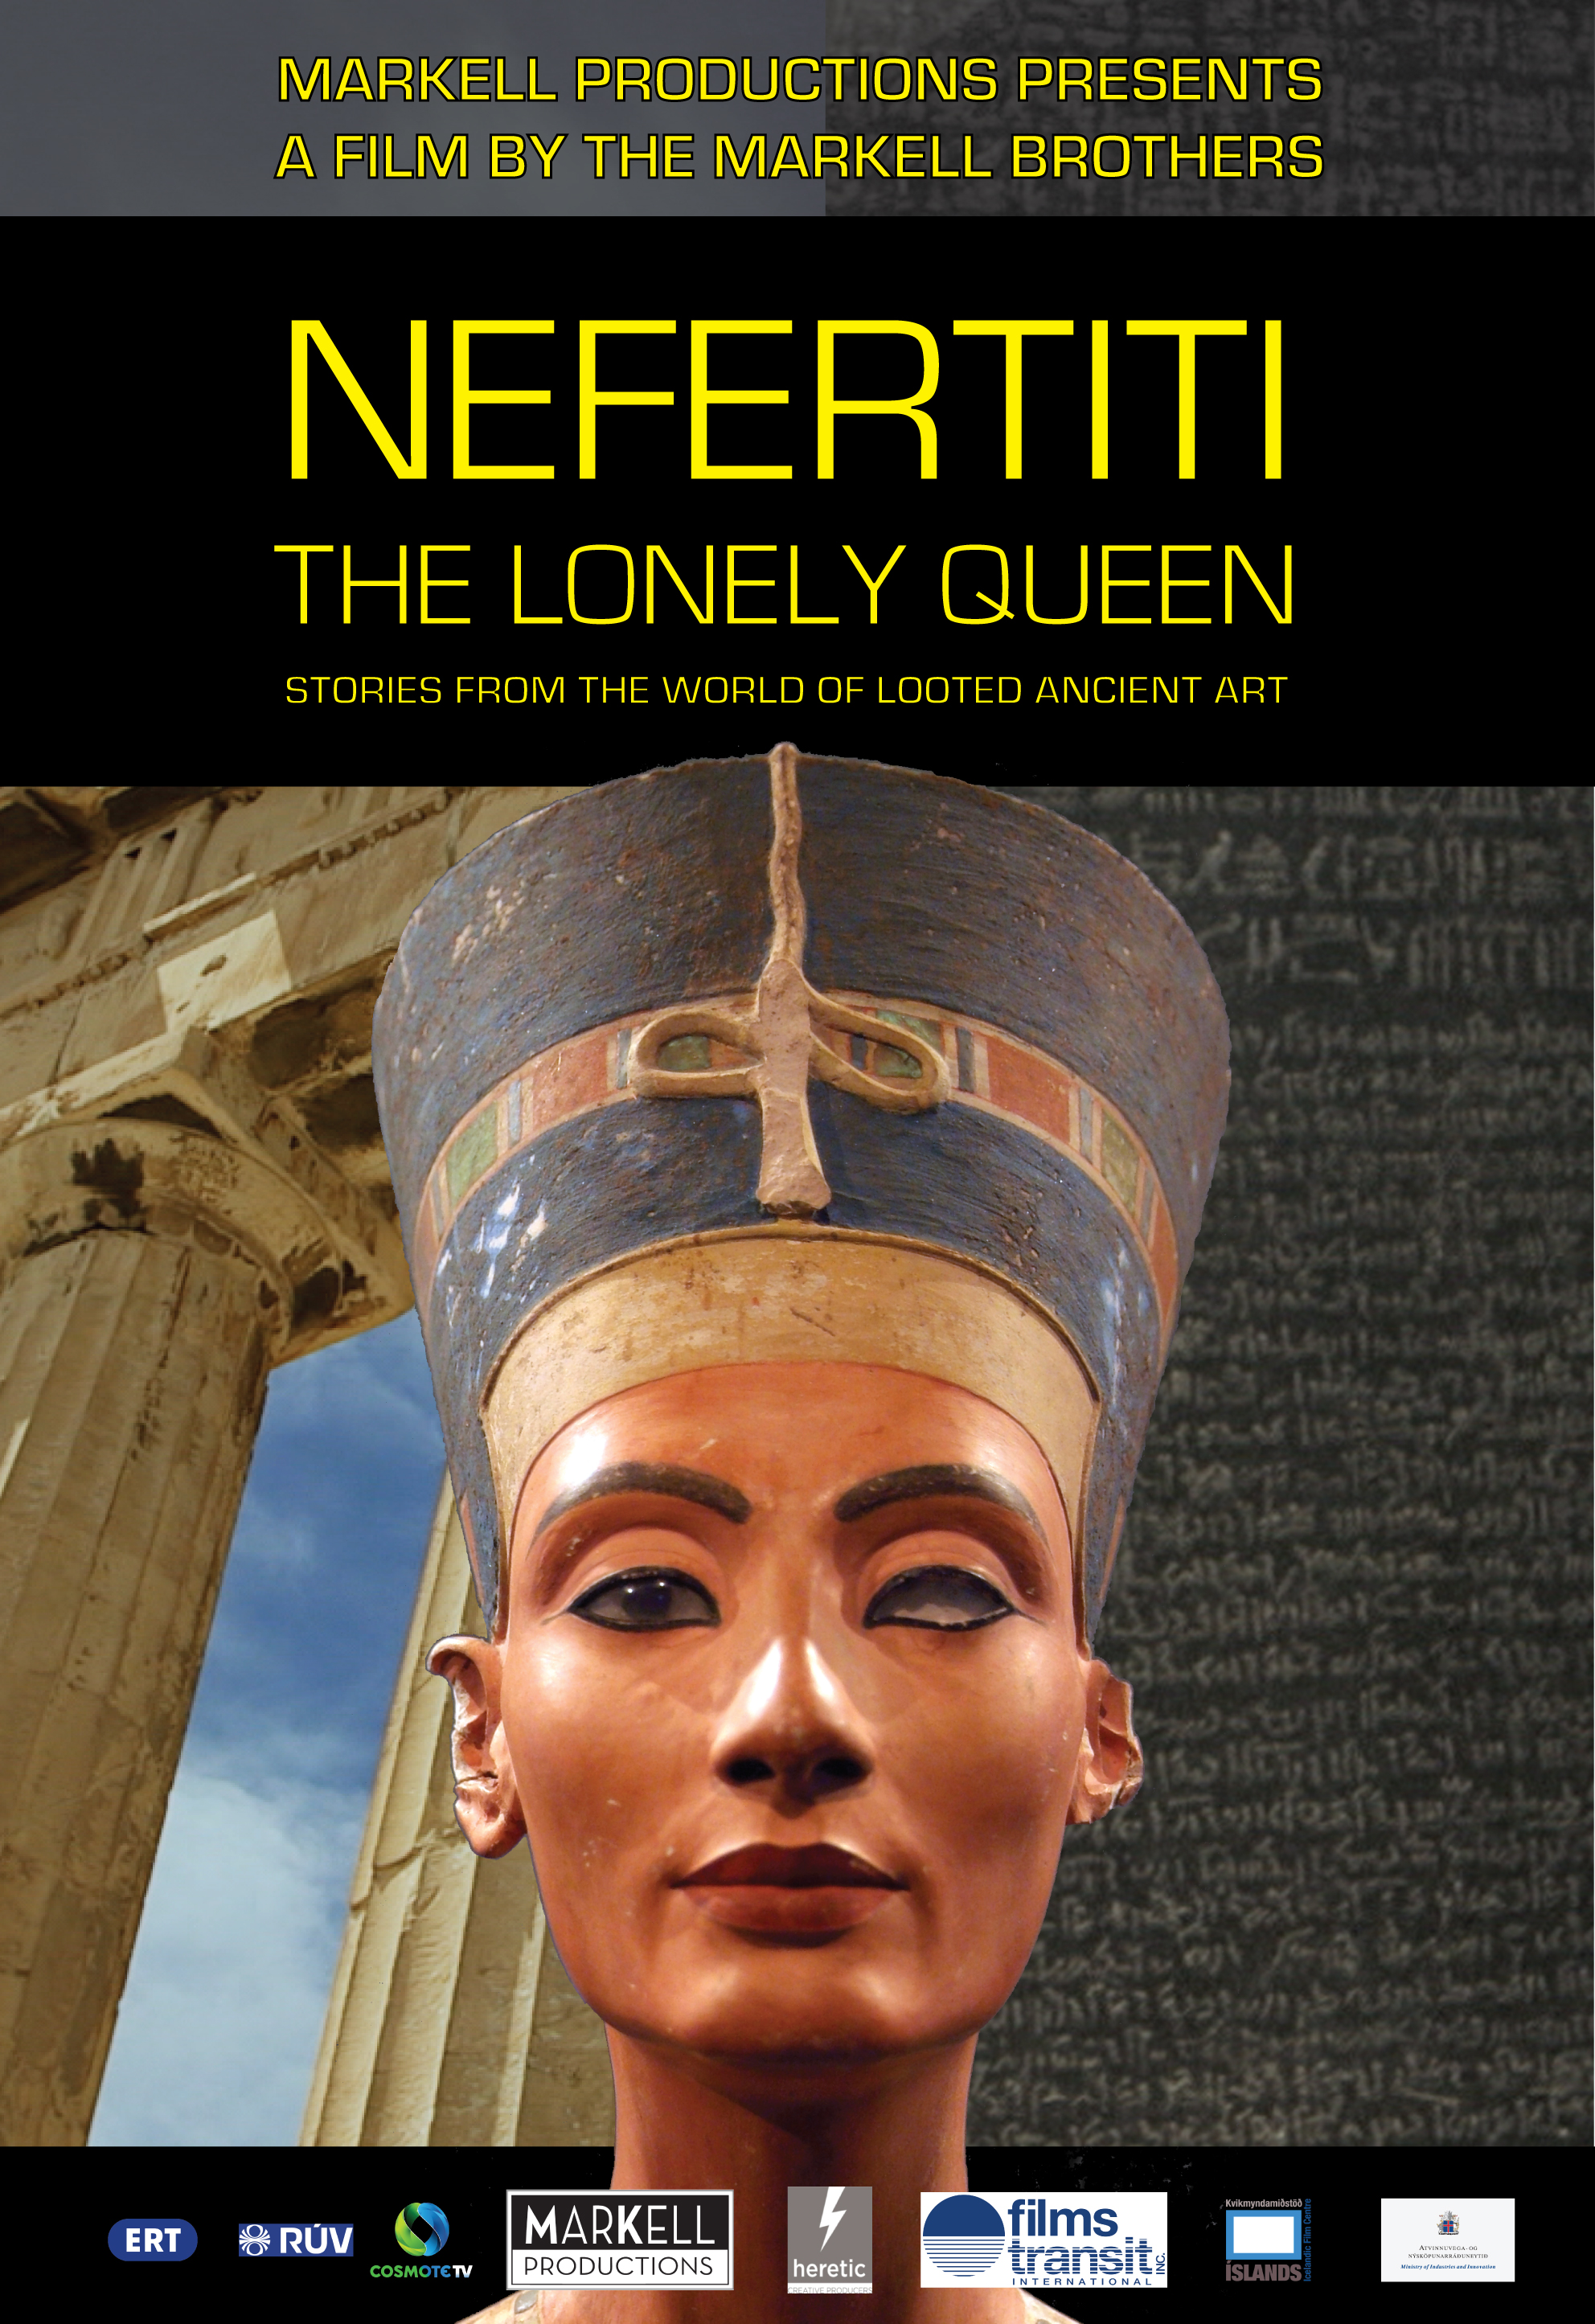 poster-nefertiti-lonely-queen.jpg